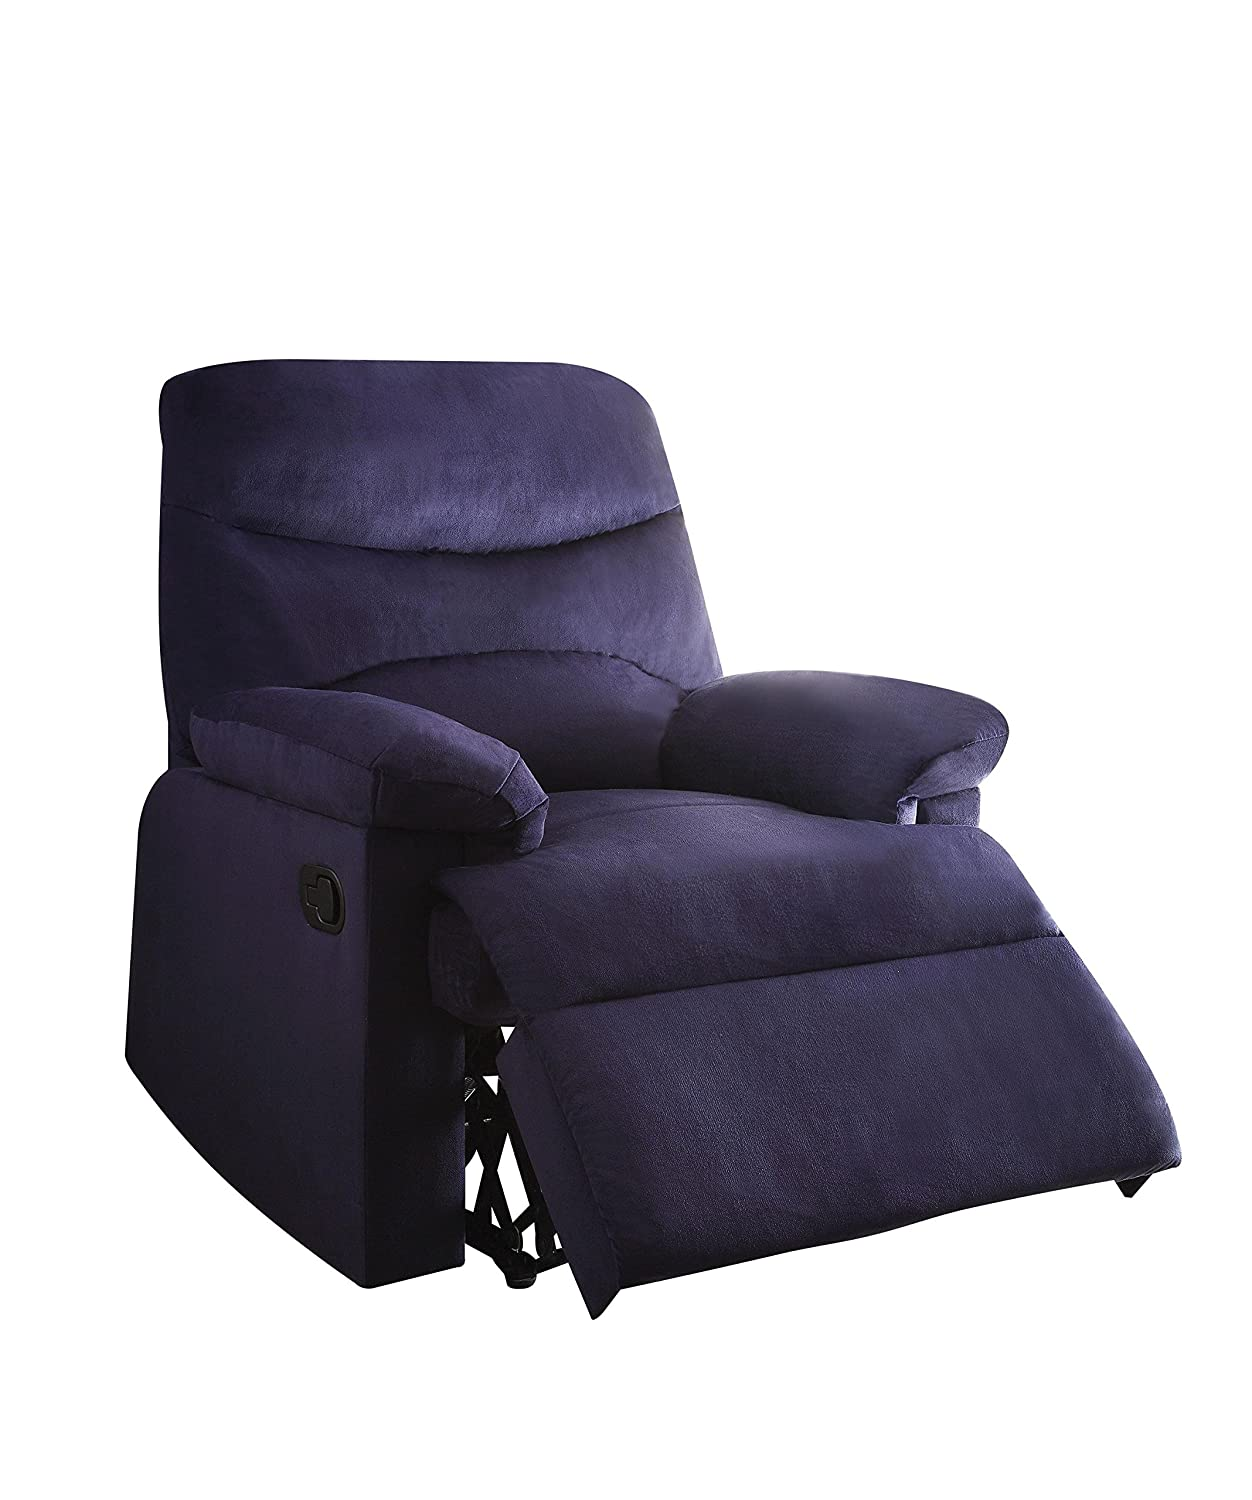 Amazon.com: Acme Furniture 00700 Arcadia Recliner, Blue Woven Fabric:  Kitchen & Dining